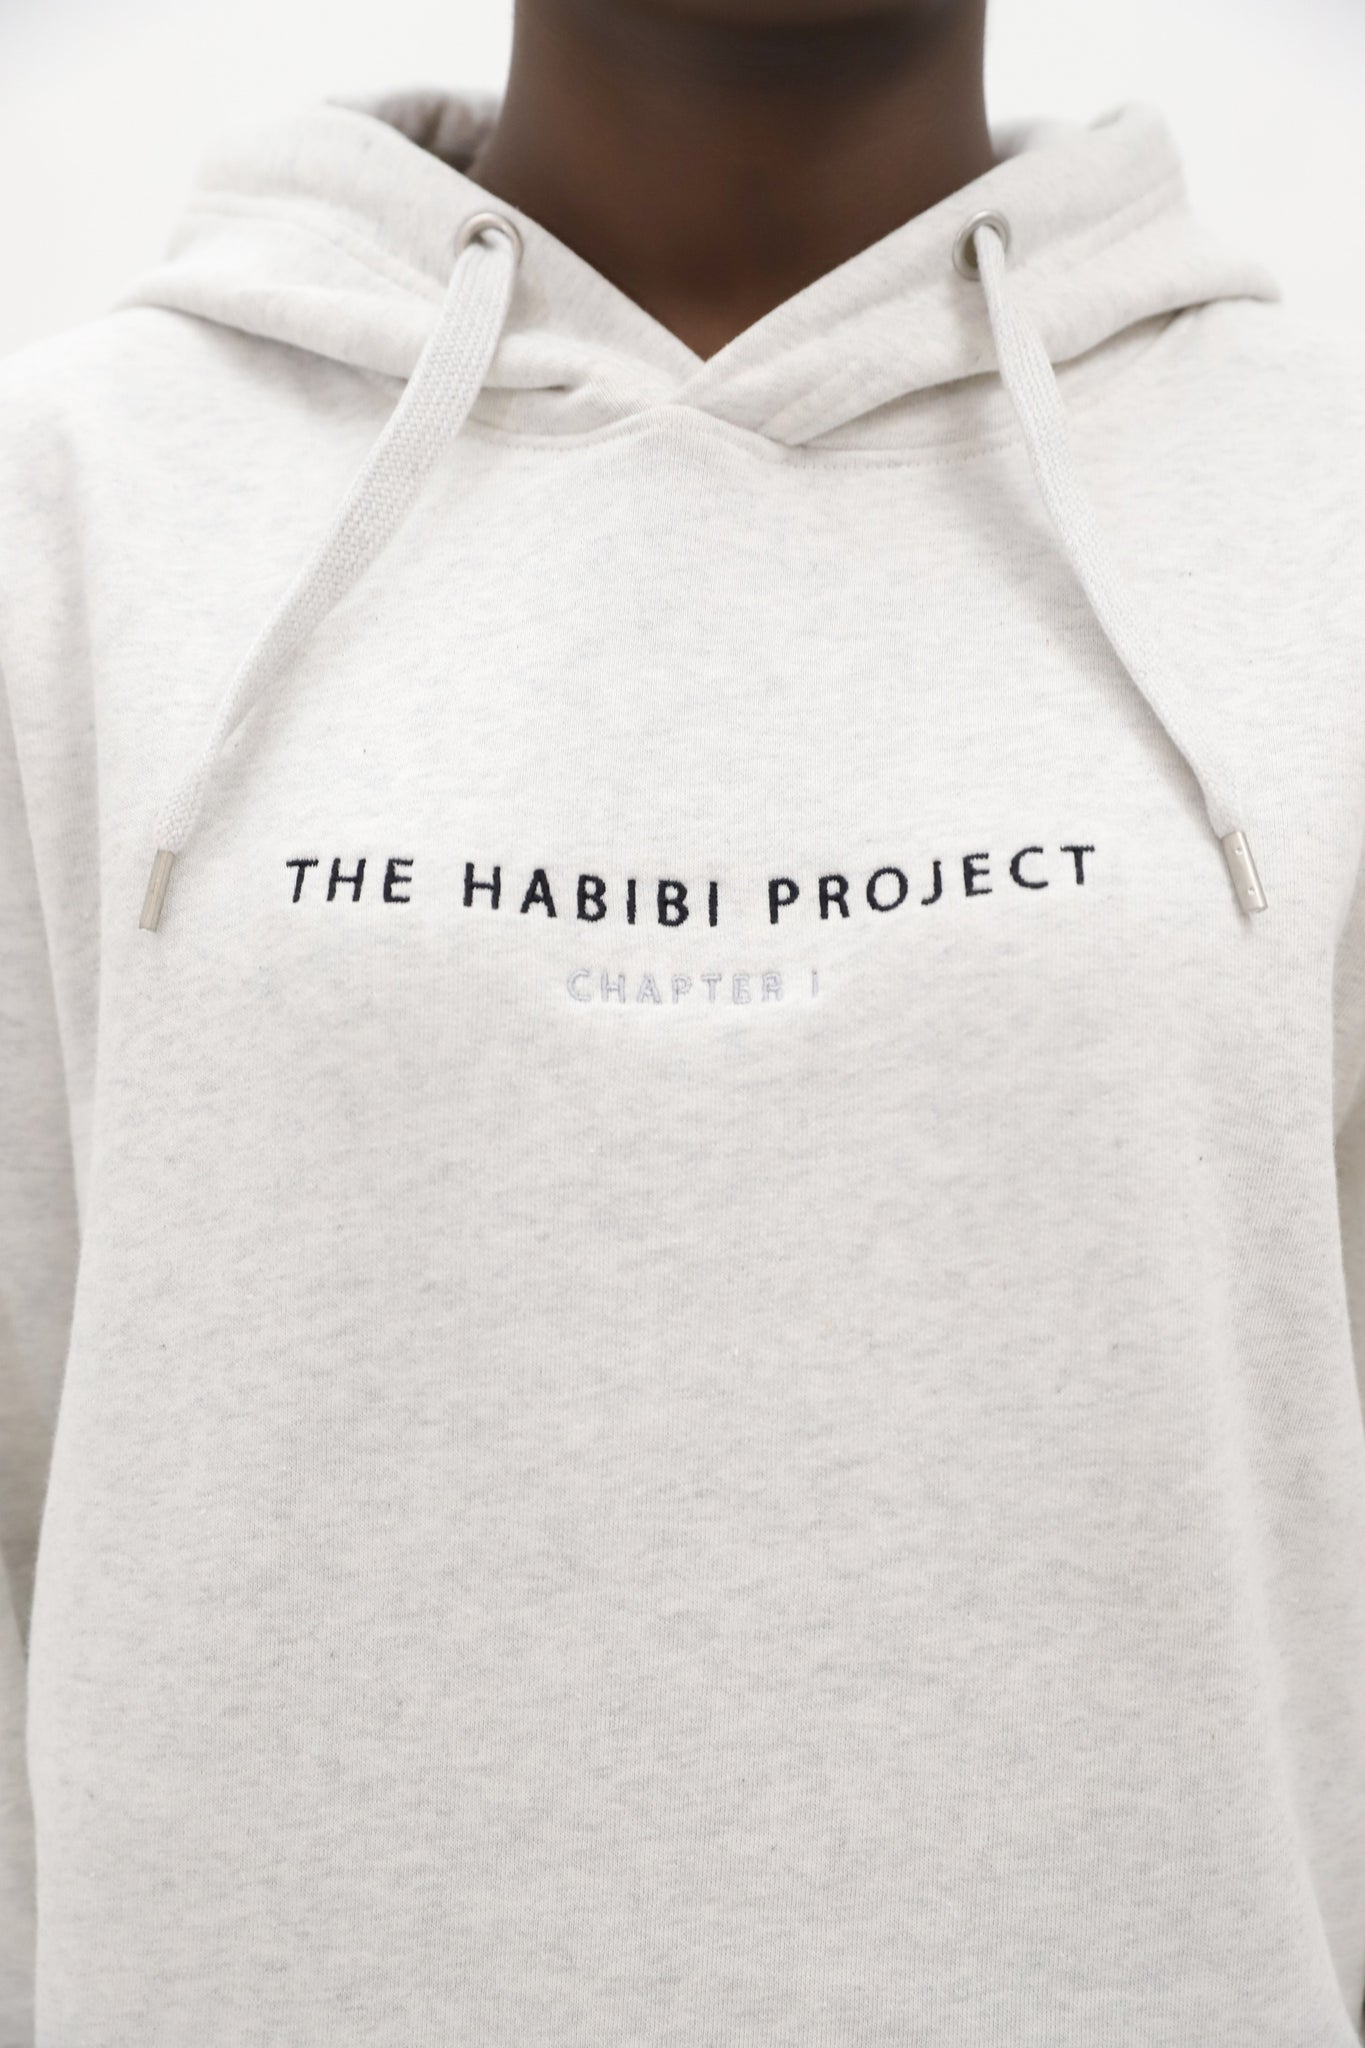 The Habibi Project: Chapter I [White]